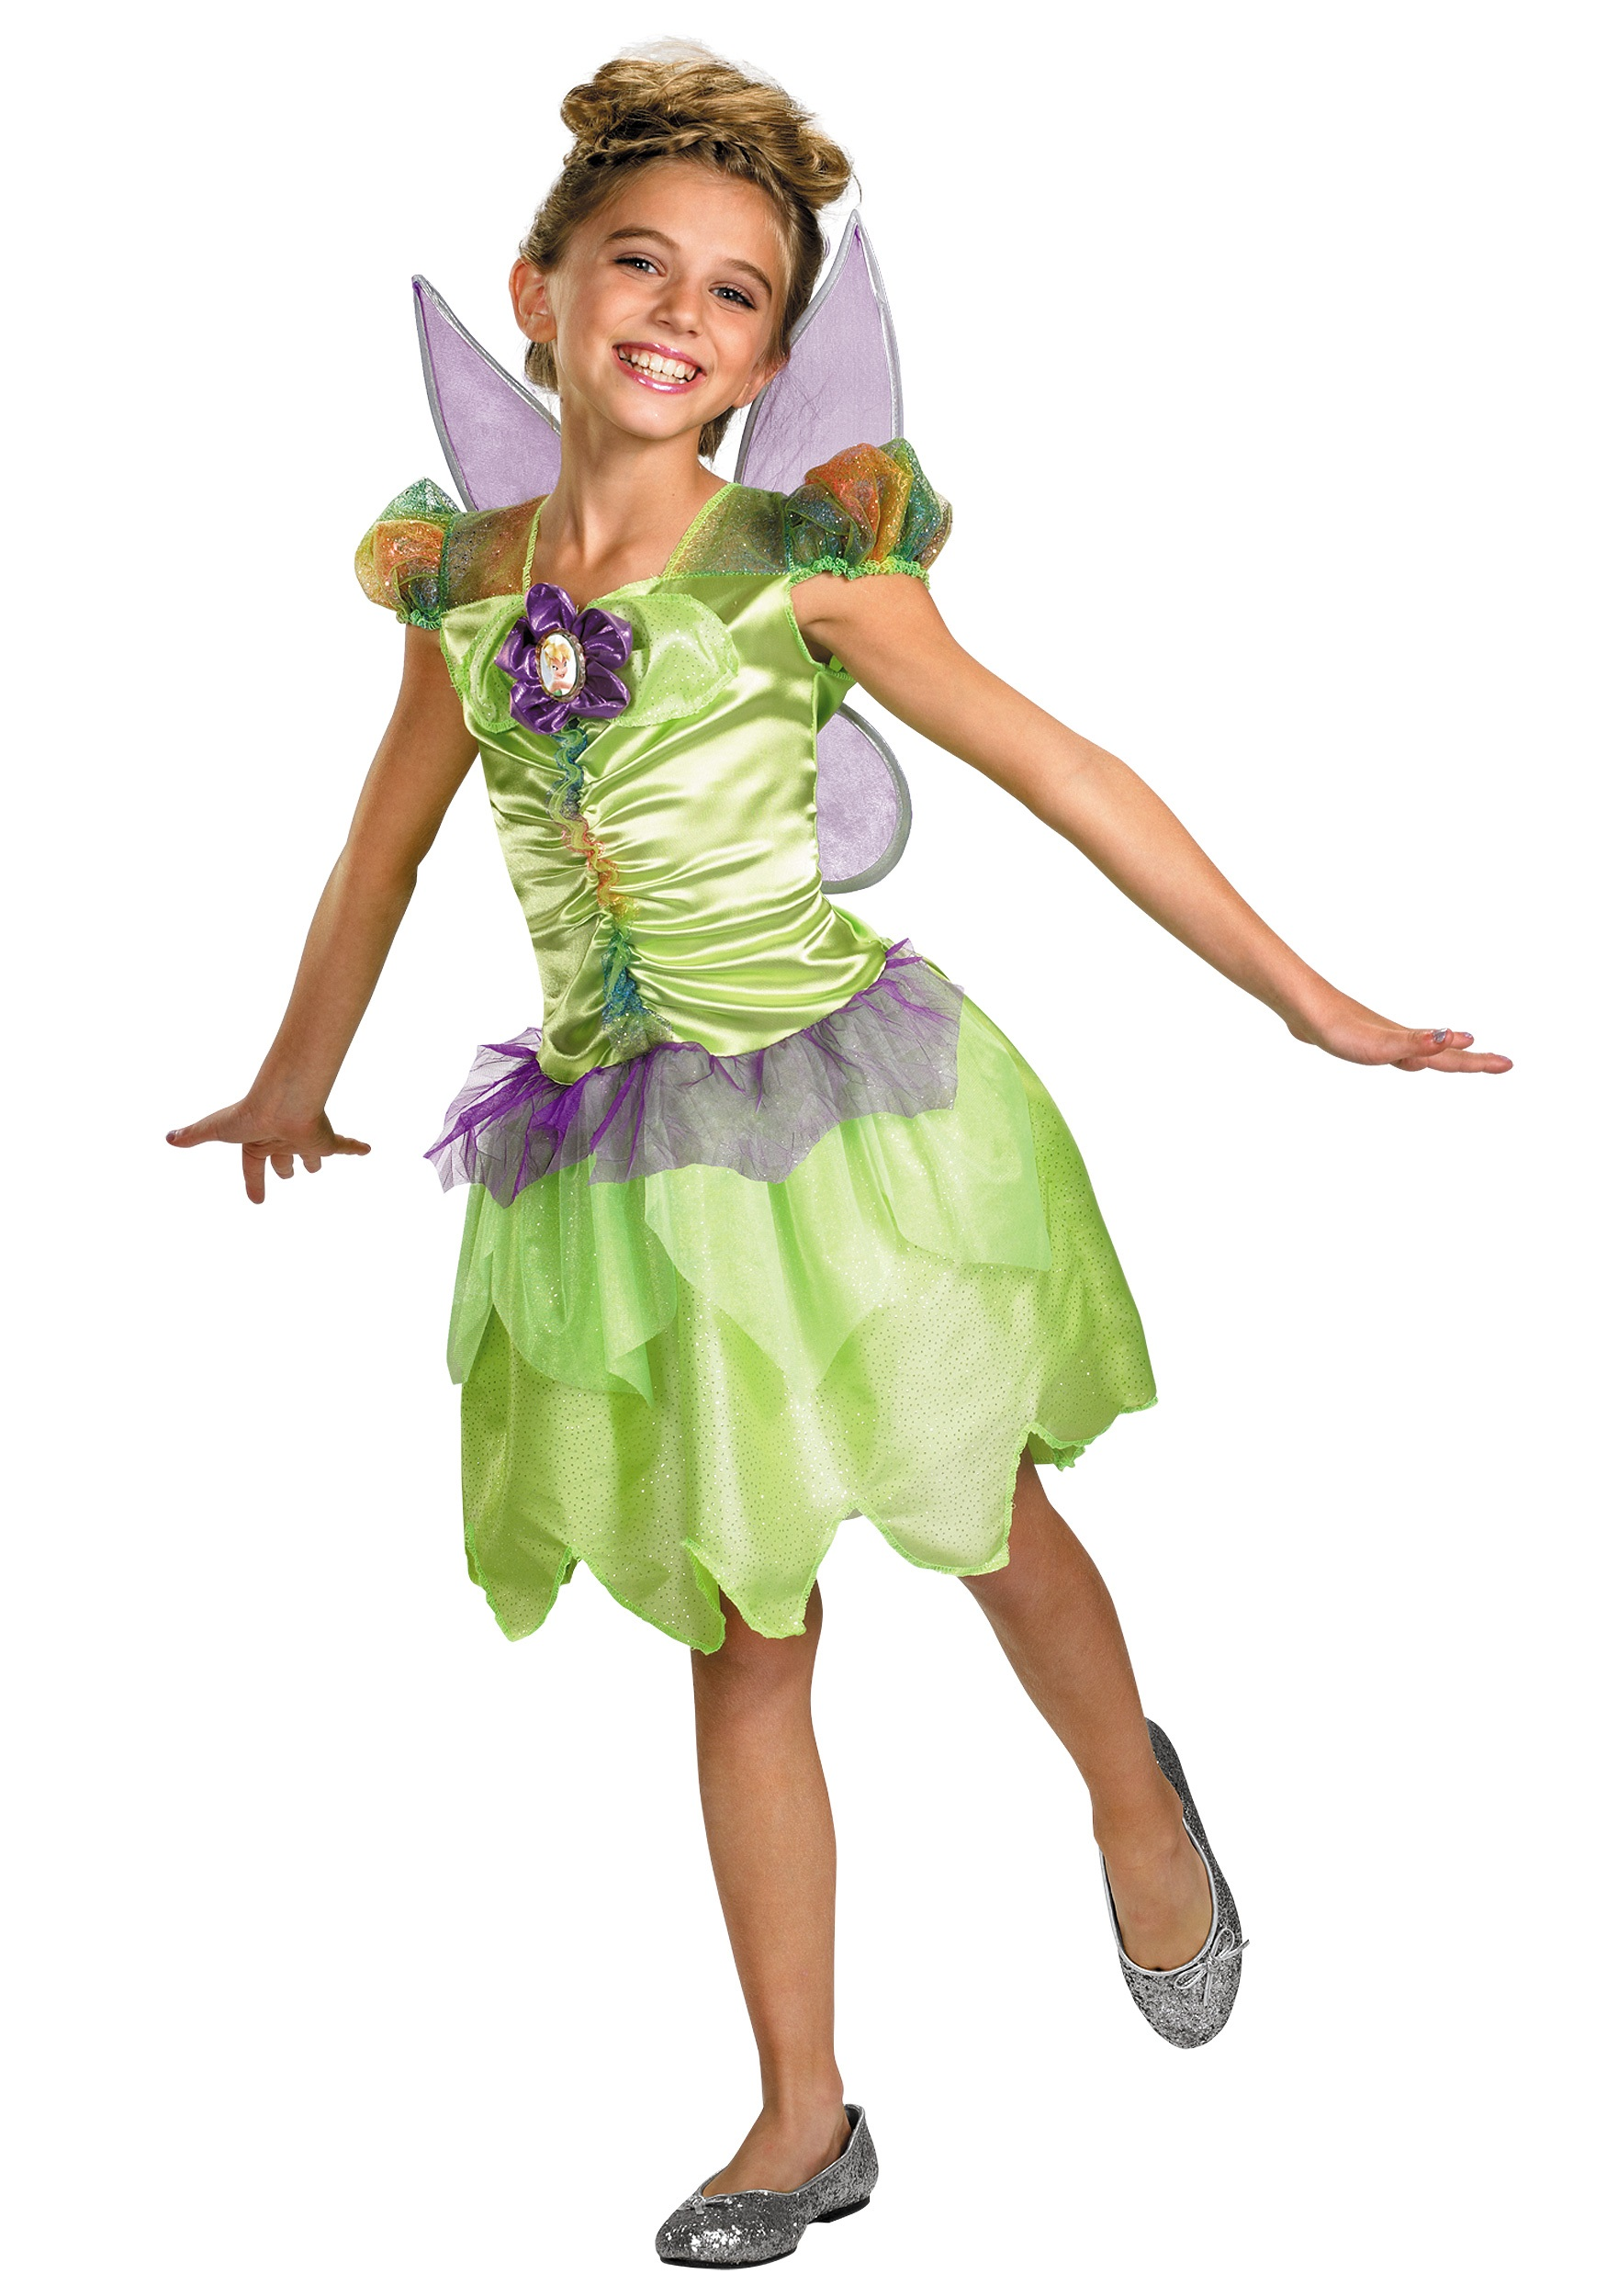 Girls Tinkerbell Fairy Costume  sc 1 st  Halloween Costume & Girls Tinkerbell Fairy Costume - Kids Fairy Costumes